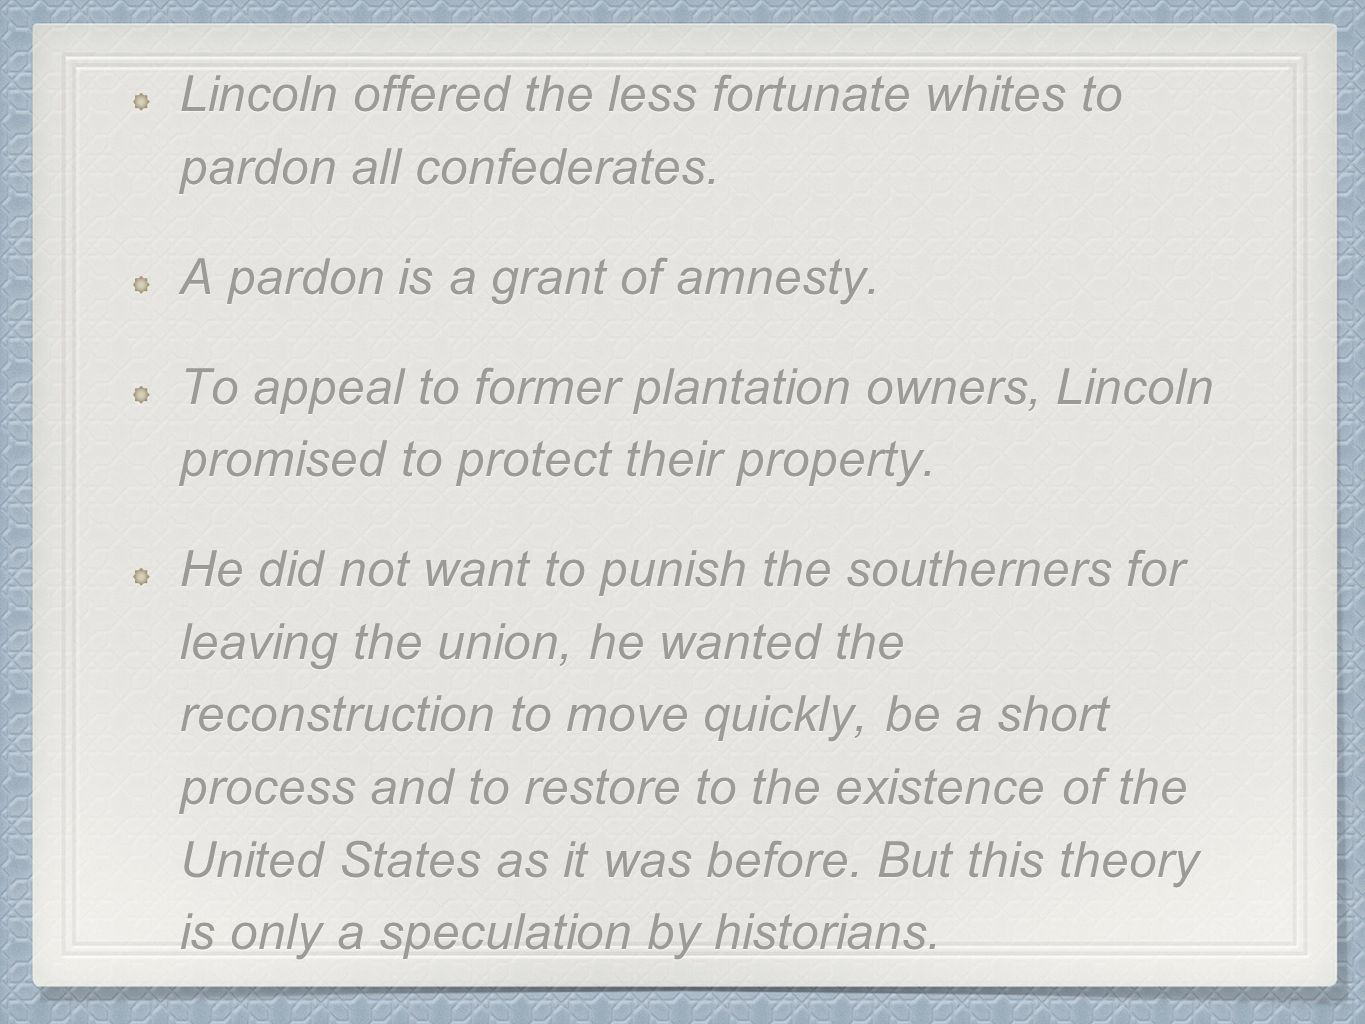 Lincoln offered the less fortunate whites to pardon all confederates.